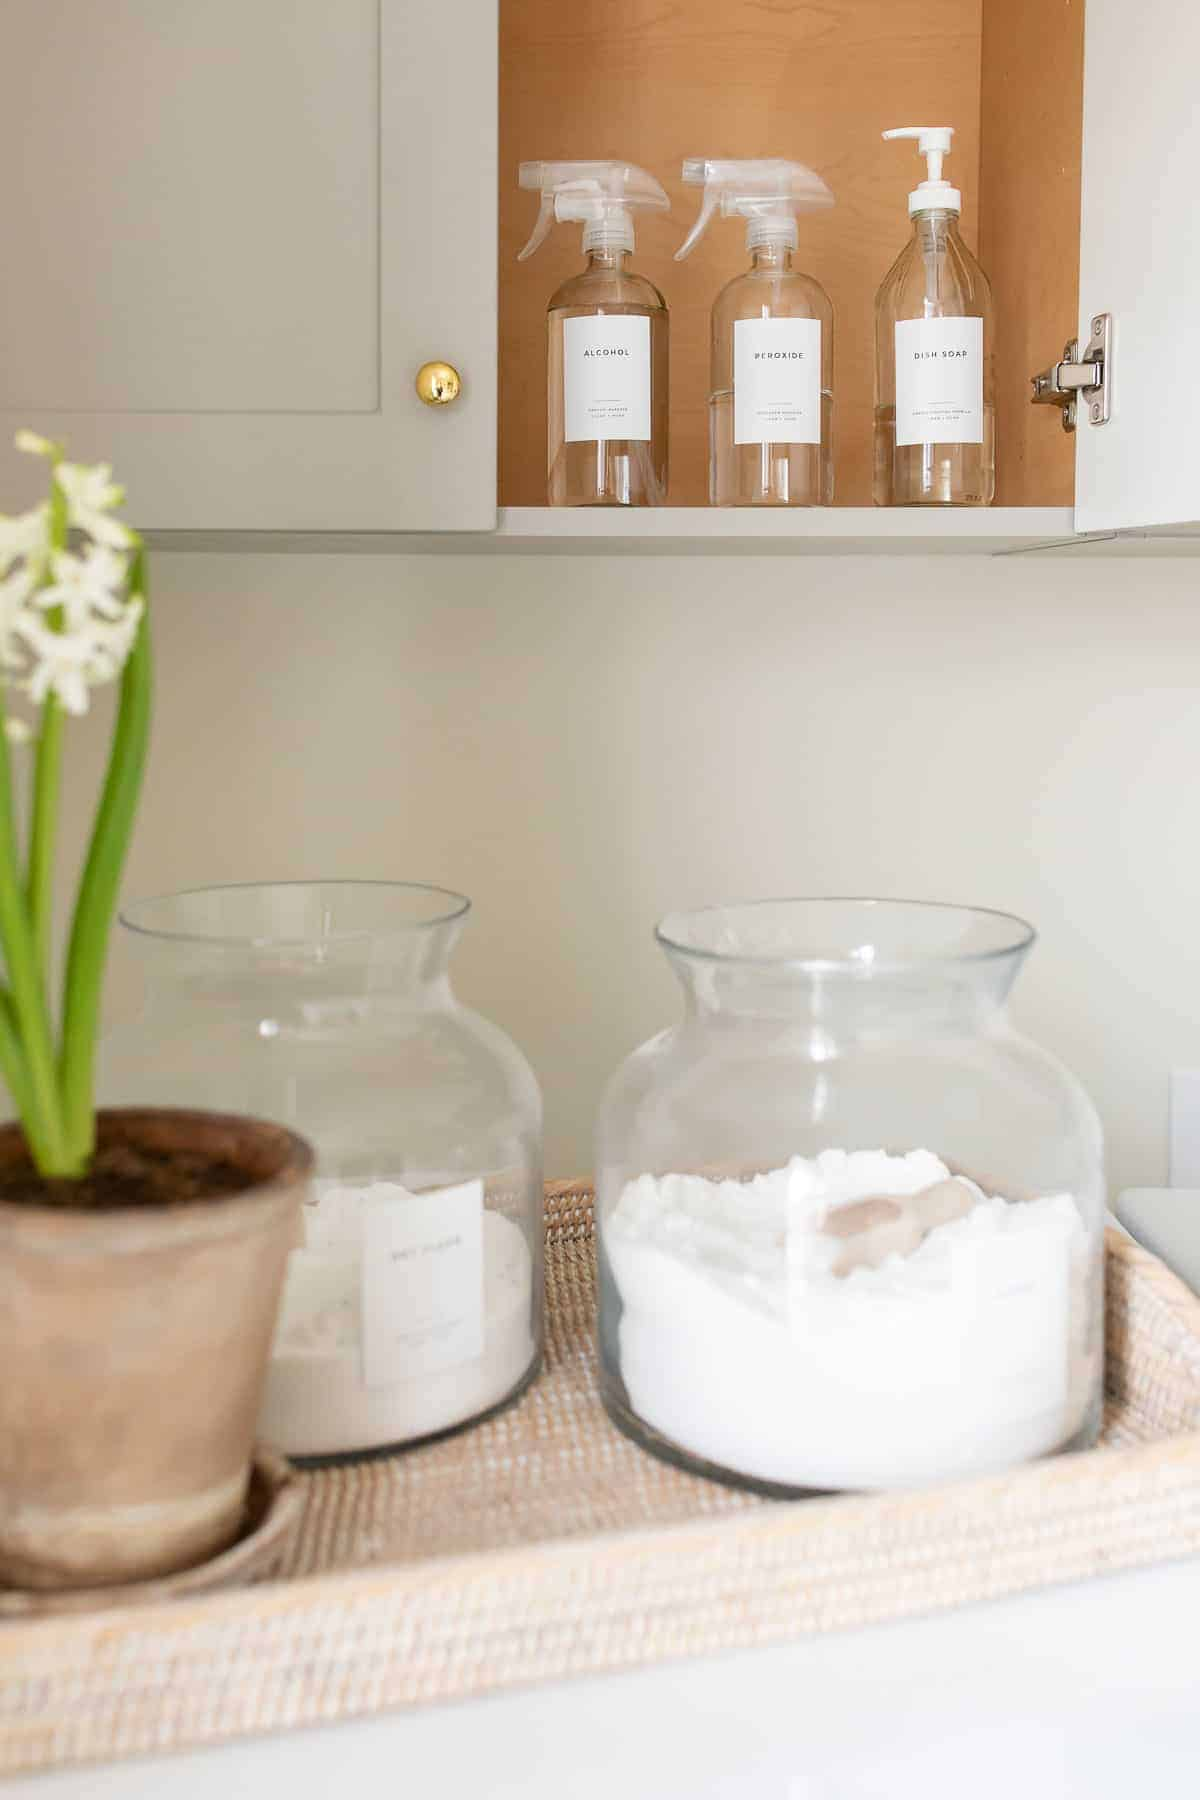 laundry room cabinet and tray filled with detergents